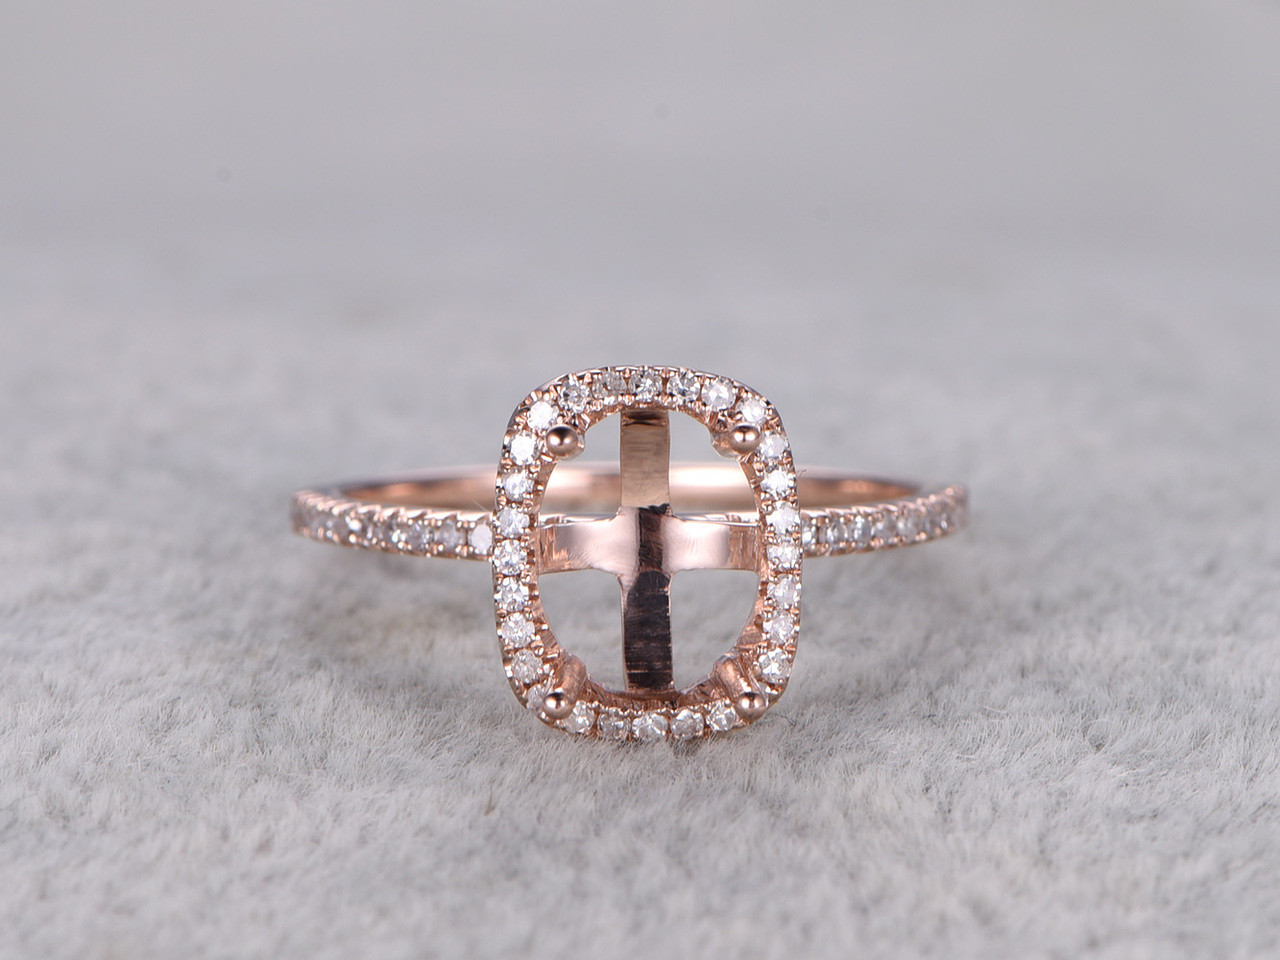 6x8mm Diamond Engagement Ring Settings Rose Gold Oval Cut Semi Mount Halo Bbbgem